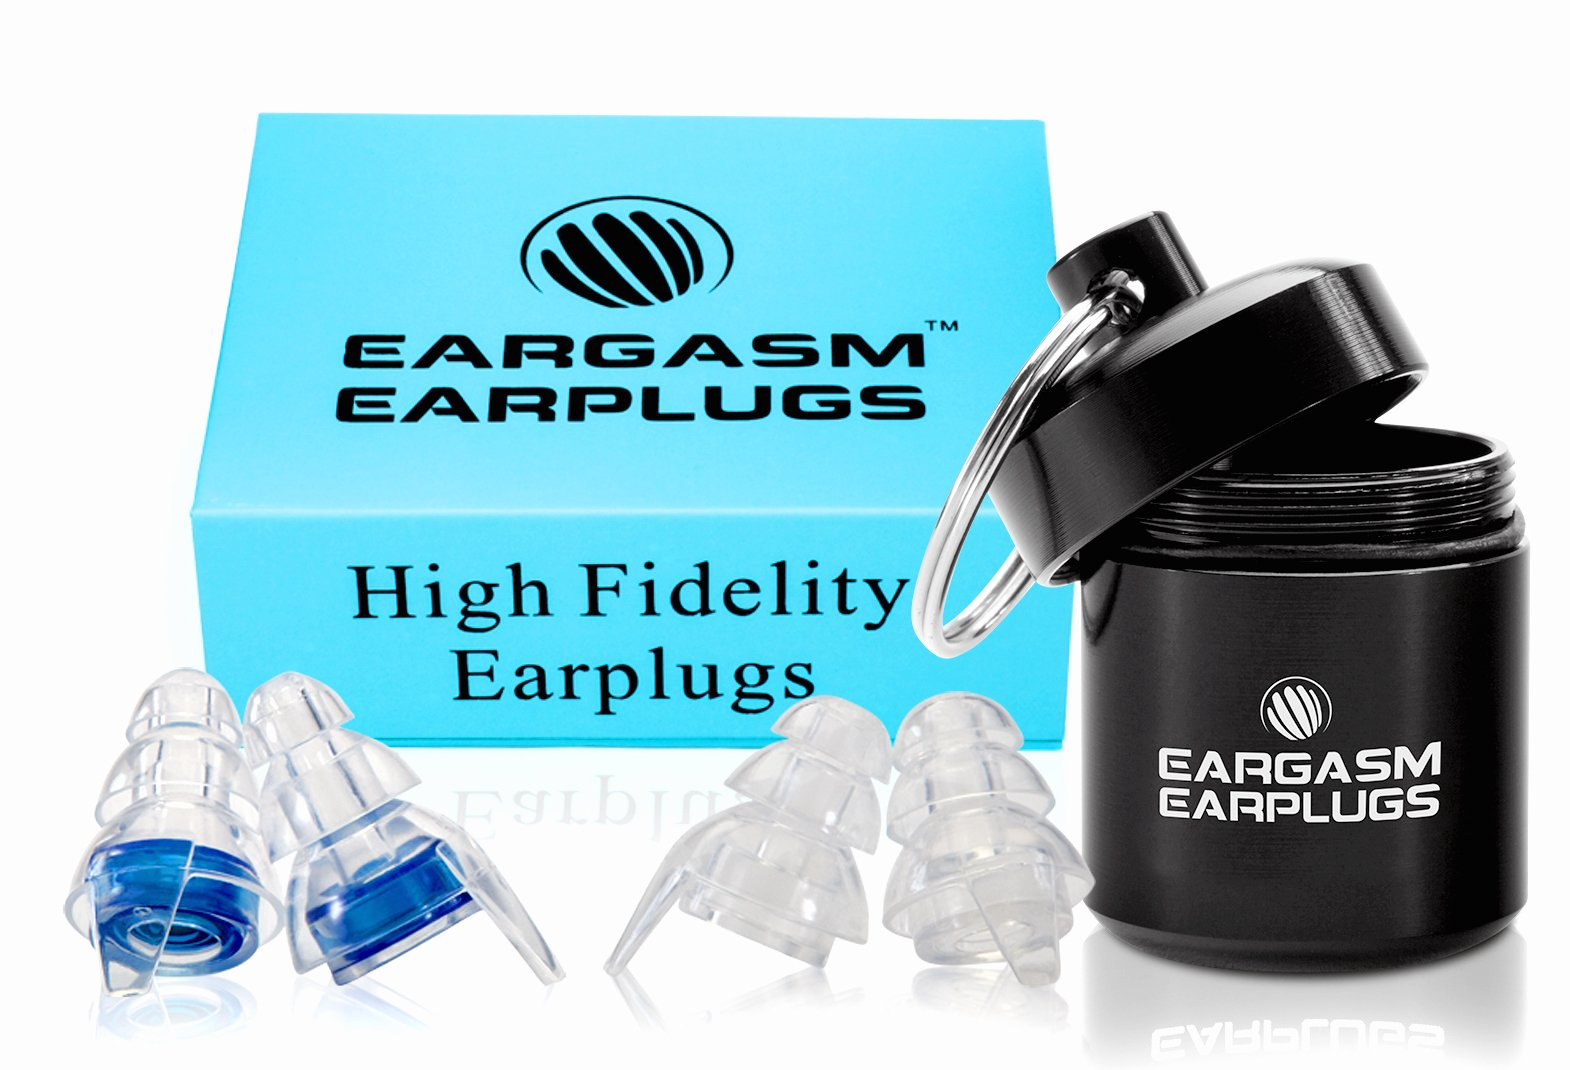 Eargasm High Fidelity Earplugs for Concerts Musicians Motorcycles Noise Sensitivity Conditions and More (Ear Plugs Come in Premium Gift Box Packaging) - Blue by Eargasm